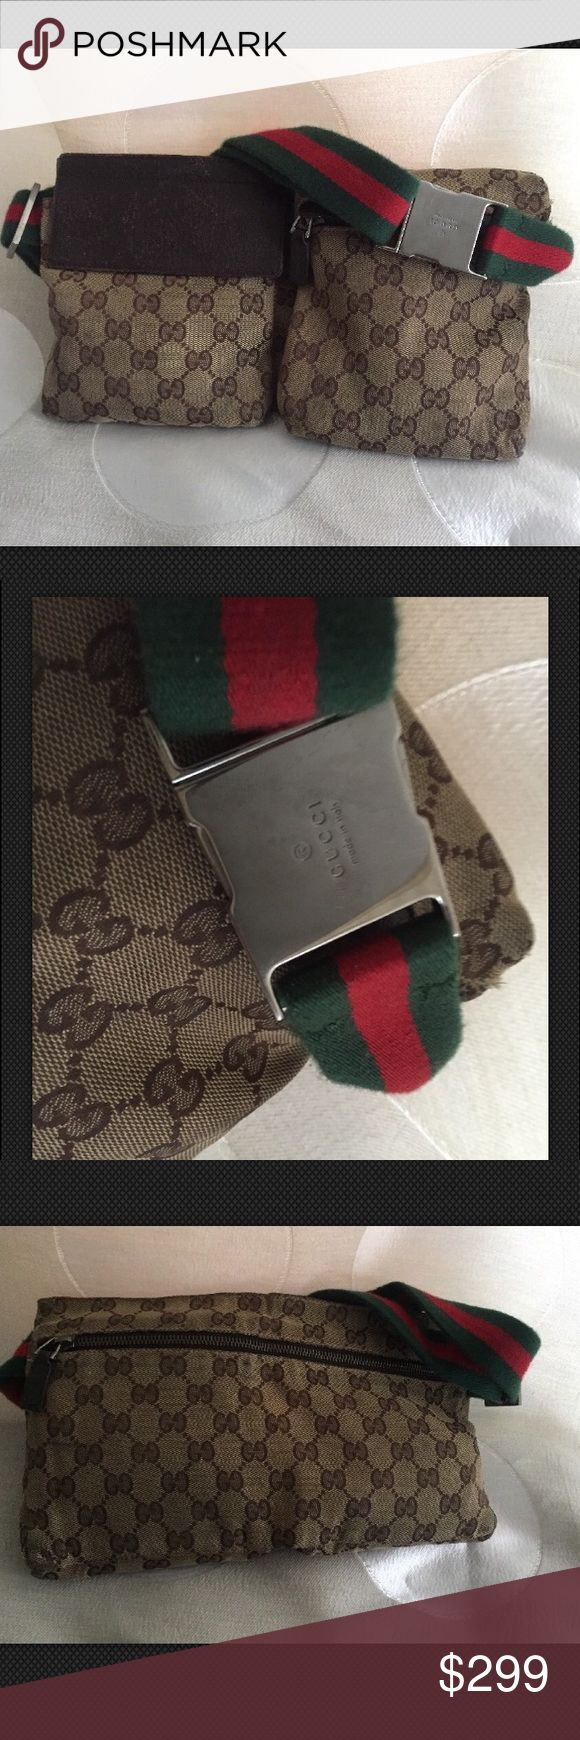 GUCCI Waist Bag Kim Kardashian Kendall Jenner Super cute gucci waist bag with iconic red green waist strap. As seen on Kim and Kendall. Get this hot accessory perfect for summer. Rare and vintage own this gucci bag today! Gucci Bags